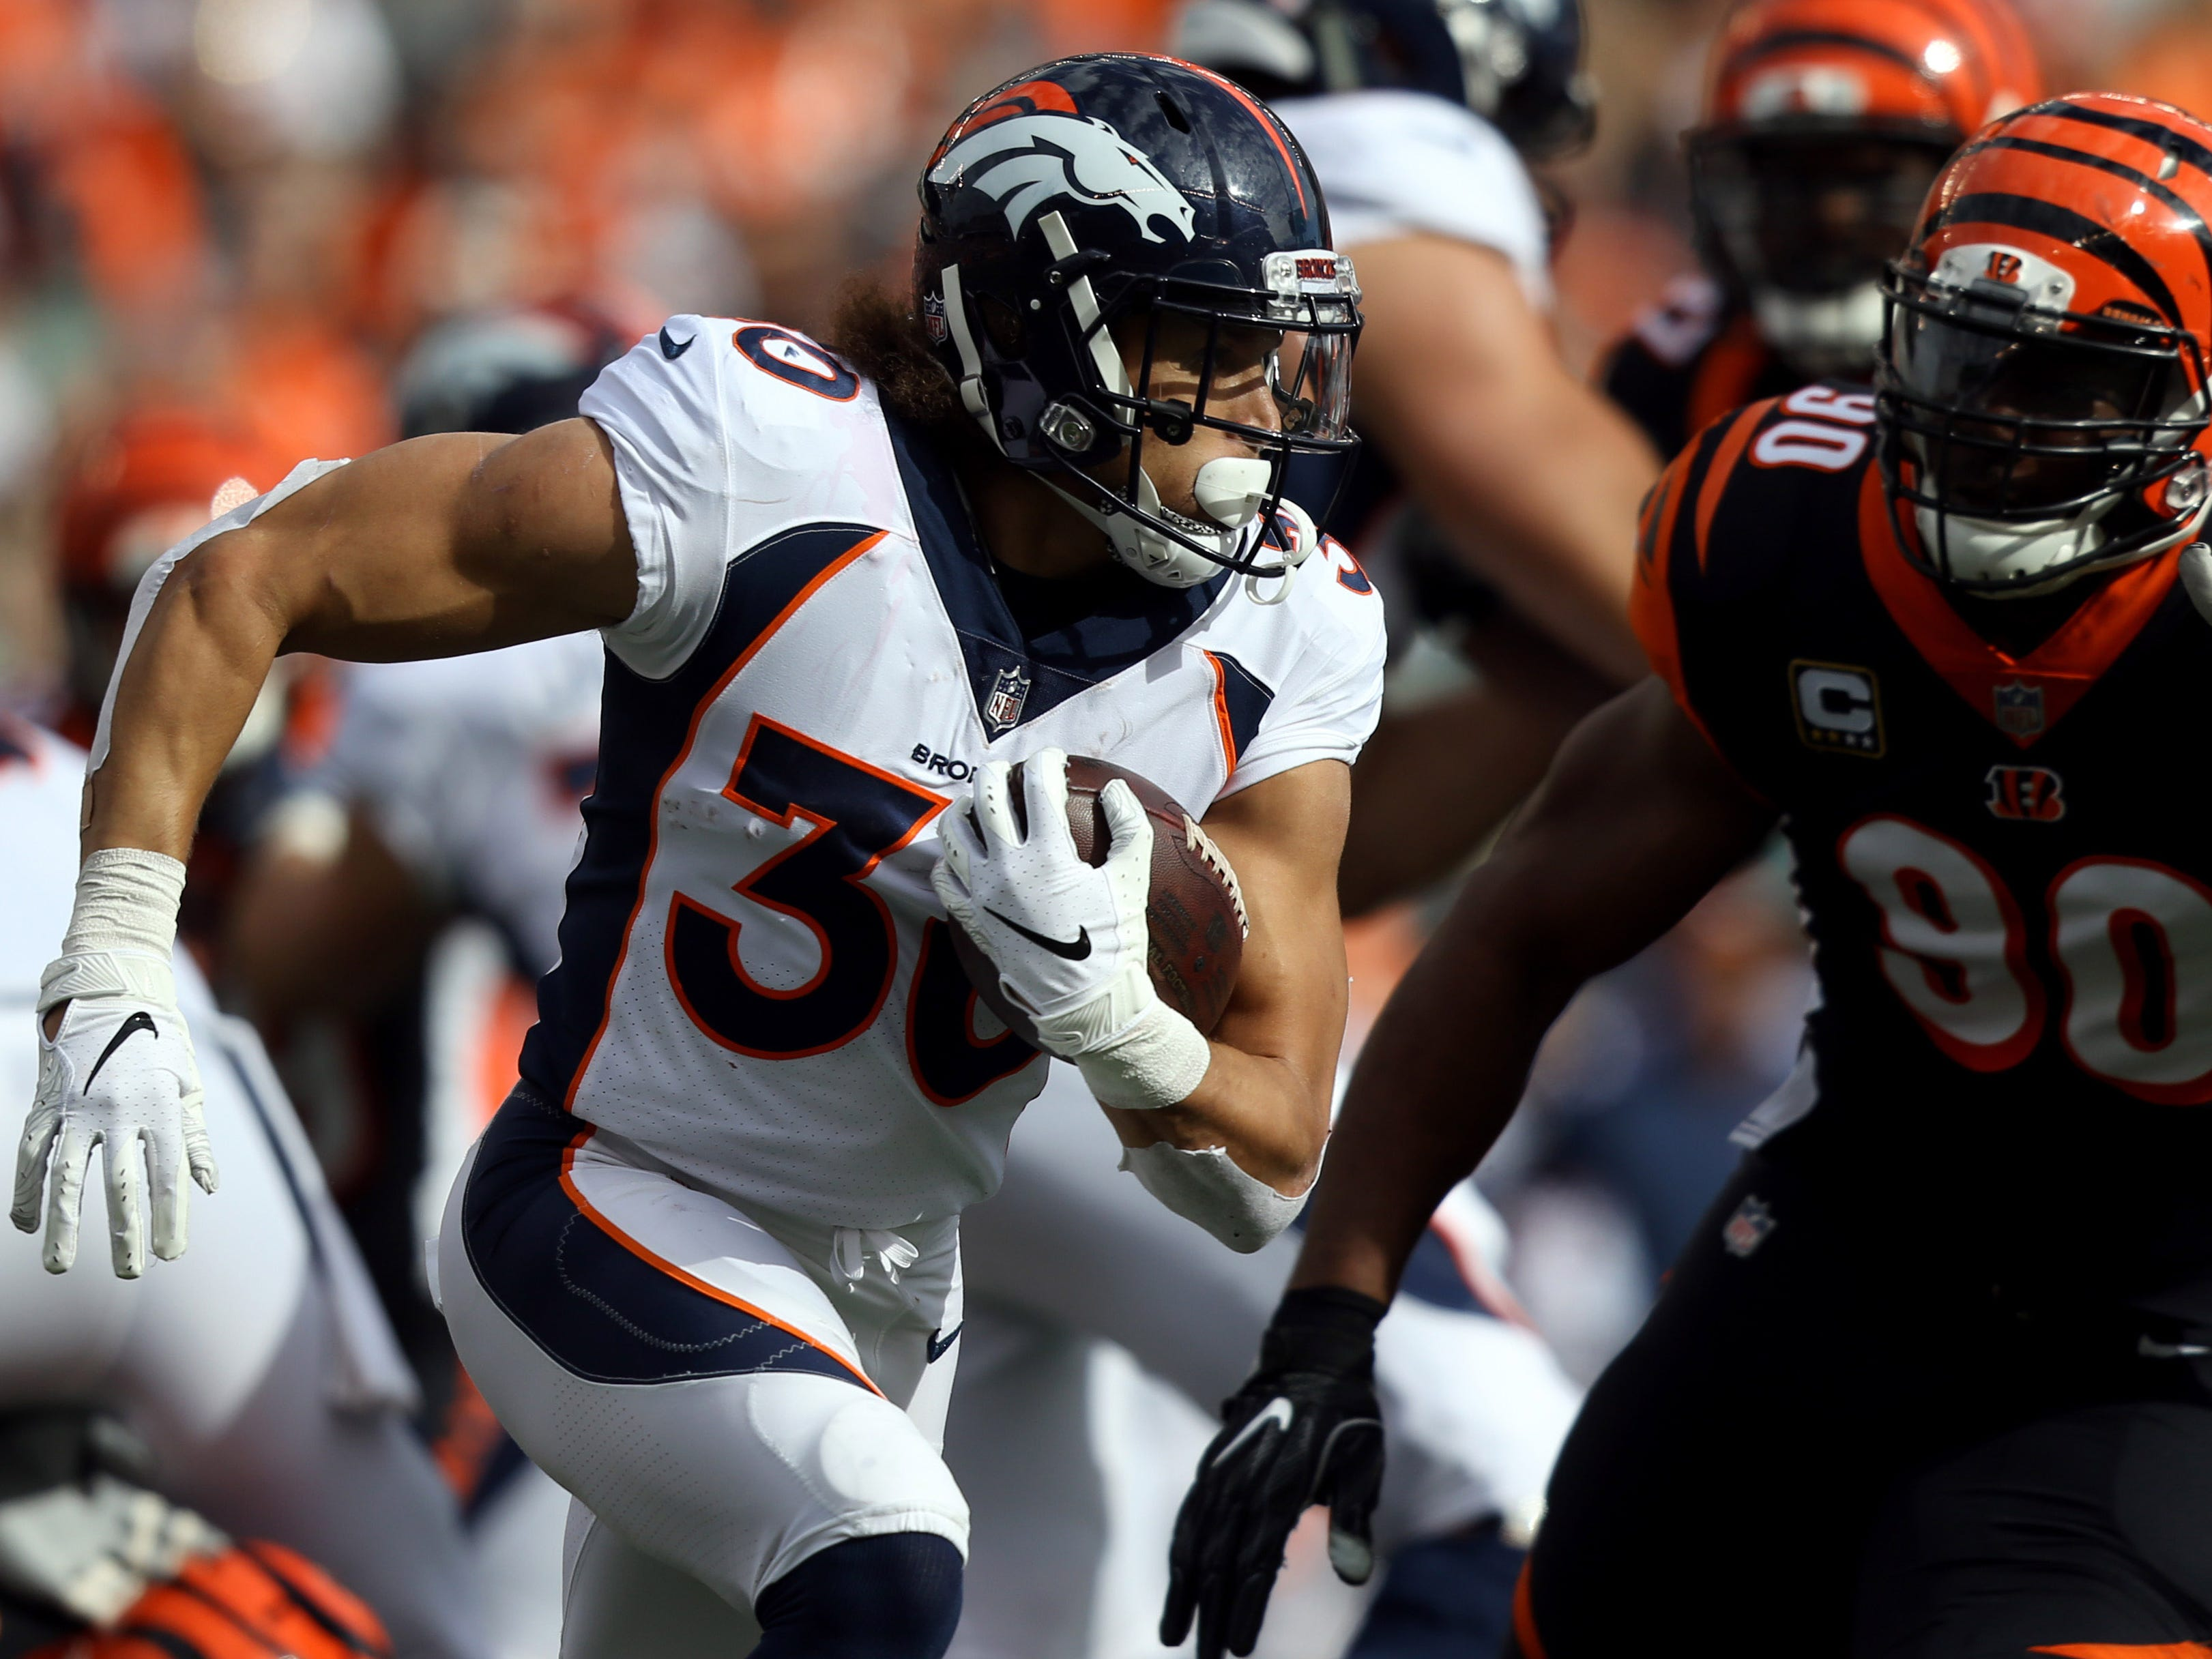 10. Broncos (11): Phillip Lindsay now leads AFC with 937 rushing yards. But Case Keenum's Broncos winning because he hasn't turned it over in last four games.